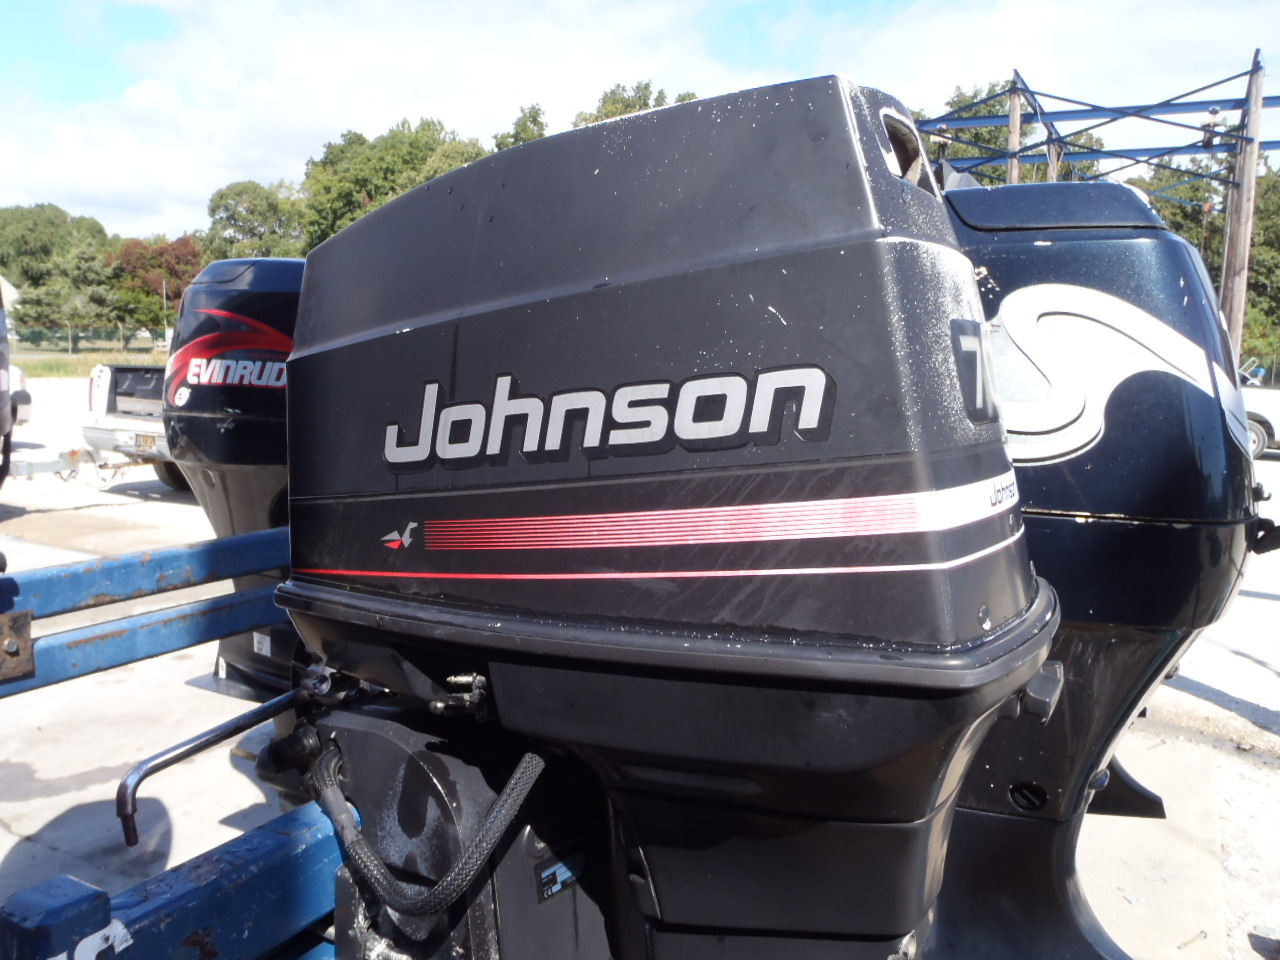 Used 1996 Johnson J70tleda 70hp 2 Stroke Outboard Boat